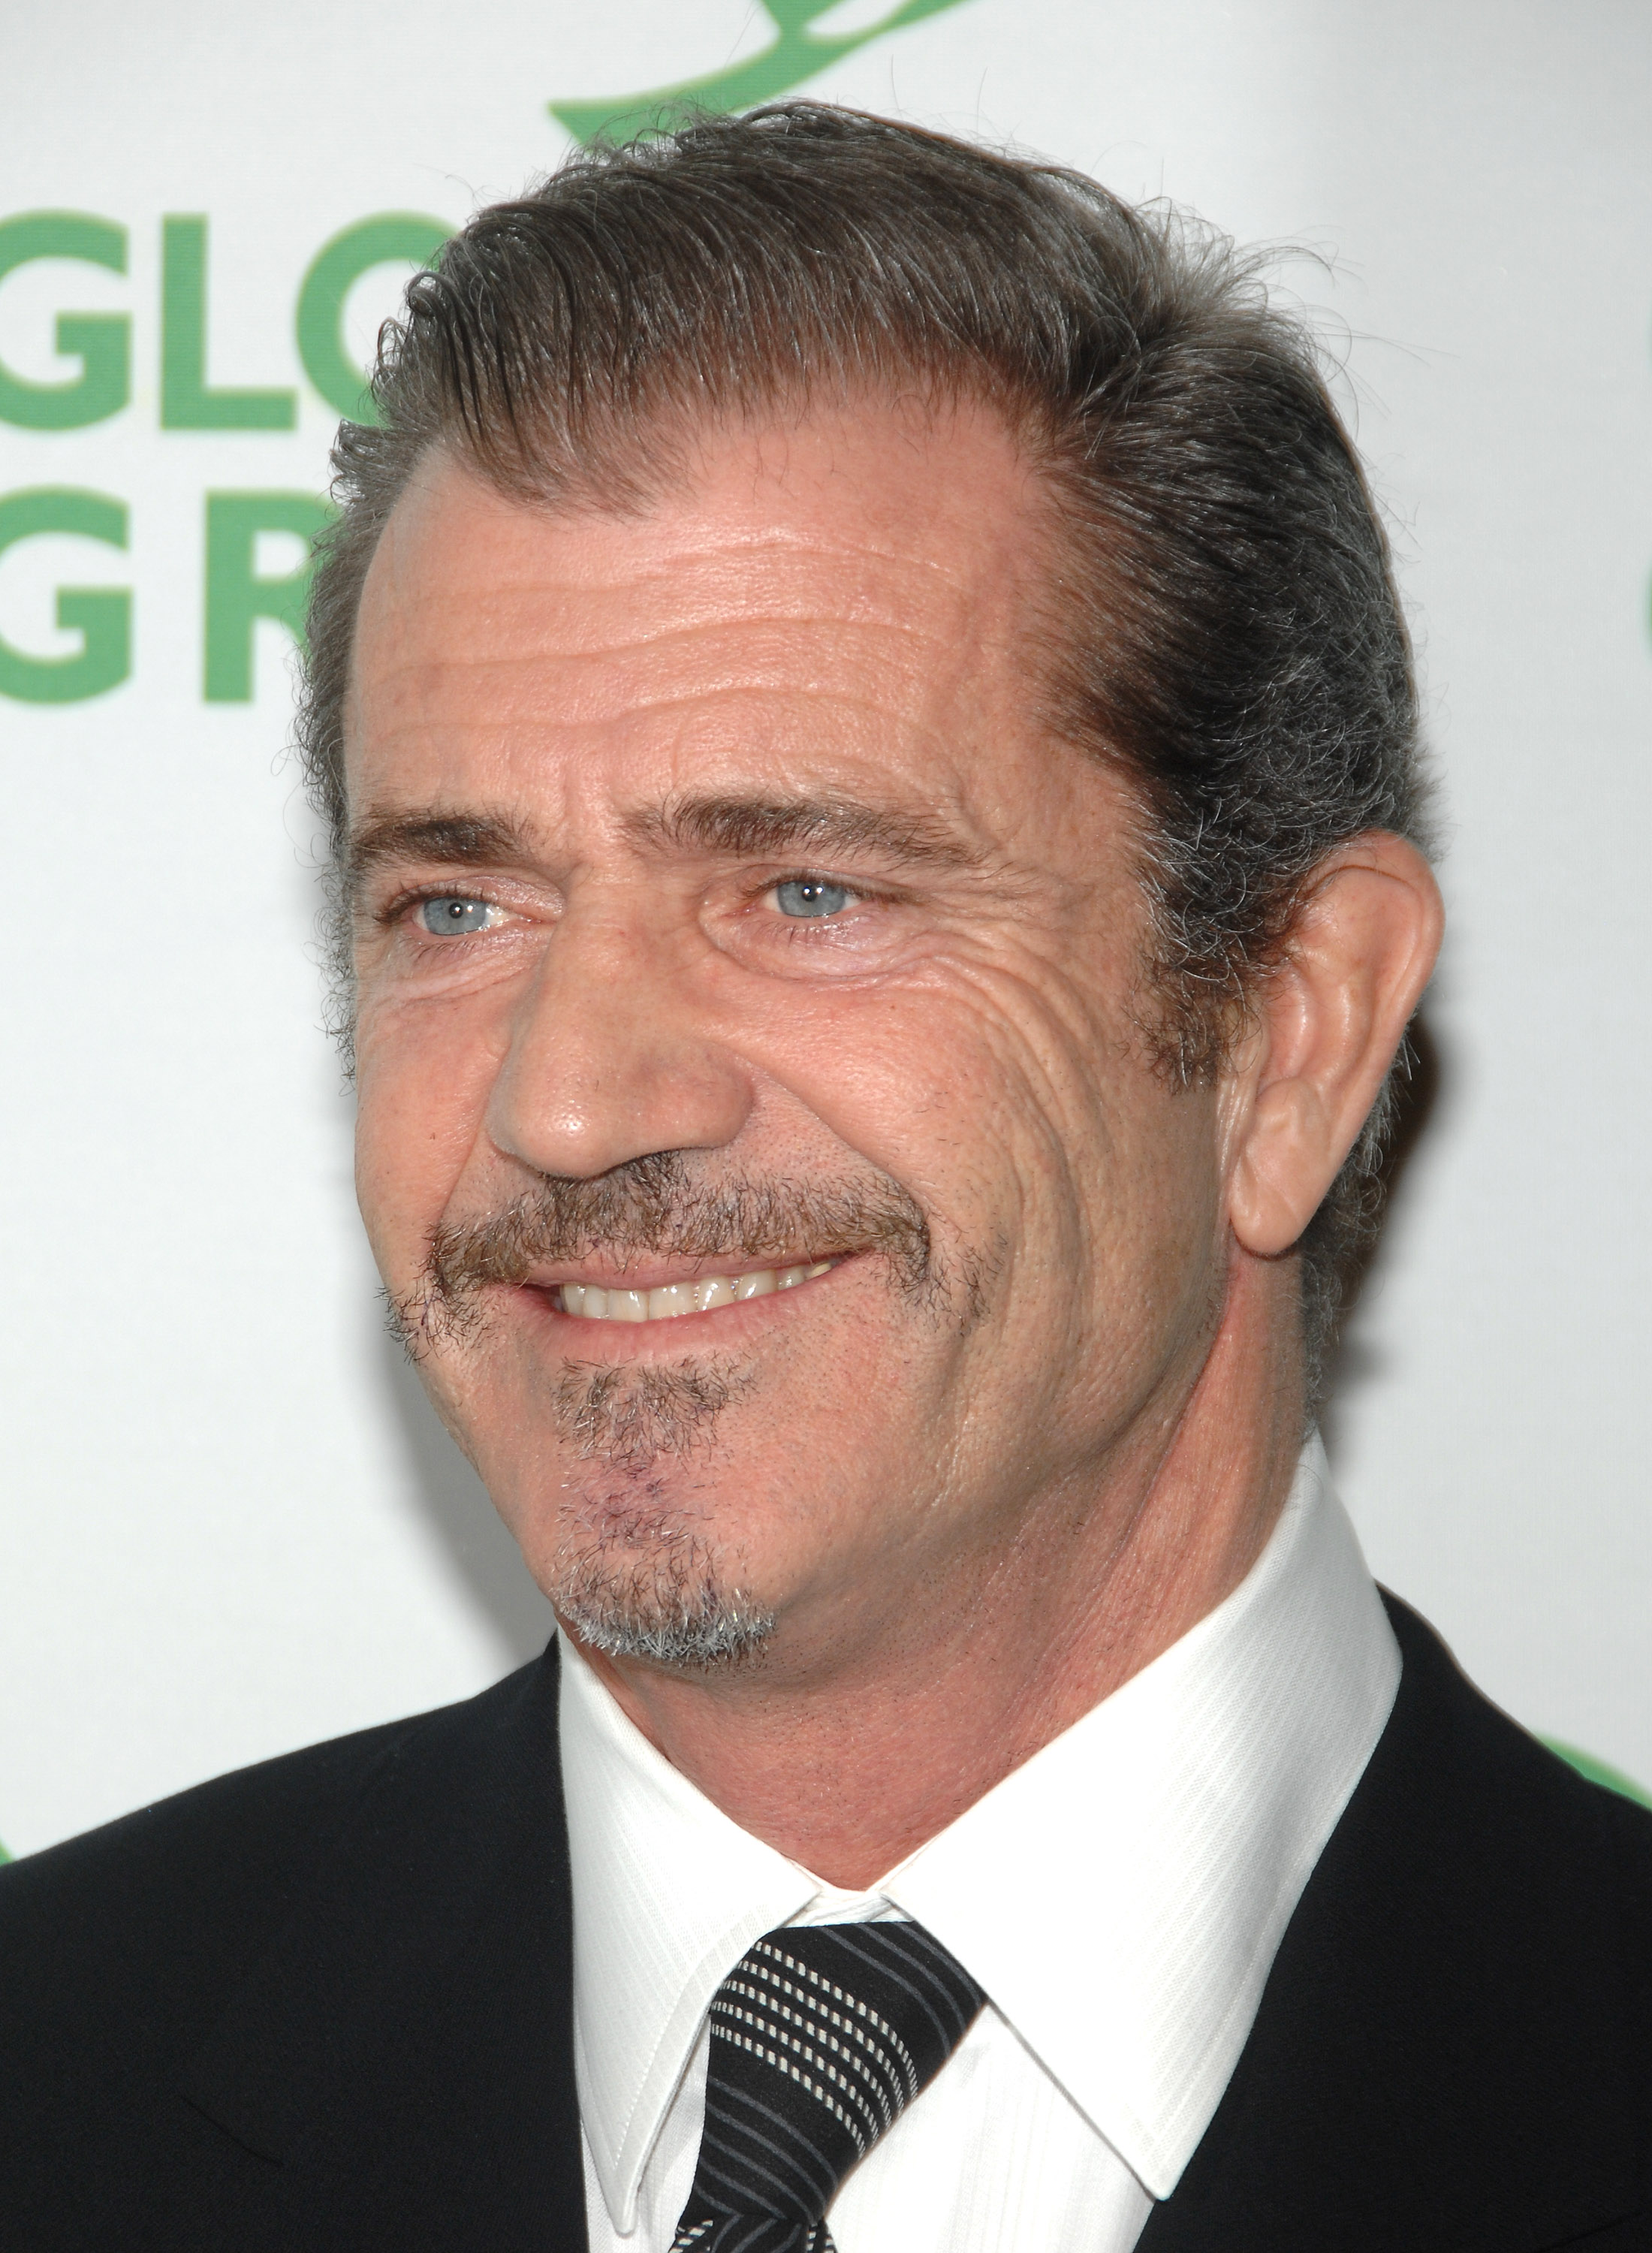 Actor and director Mel Gibson attends the 9th Annual Global Green Design Awards in New York, New York in this December 2008 file photo.